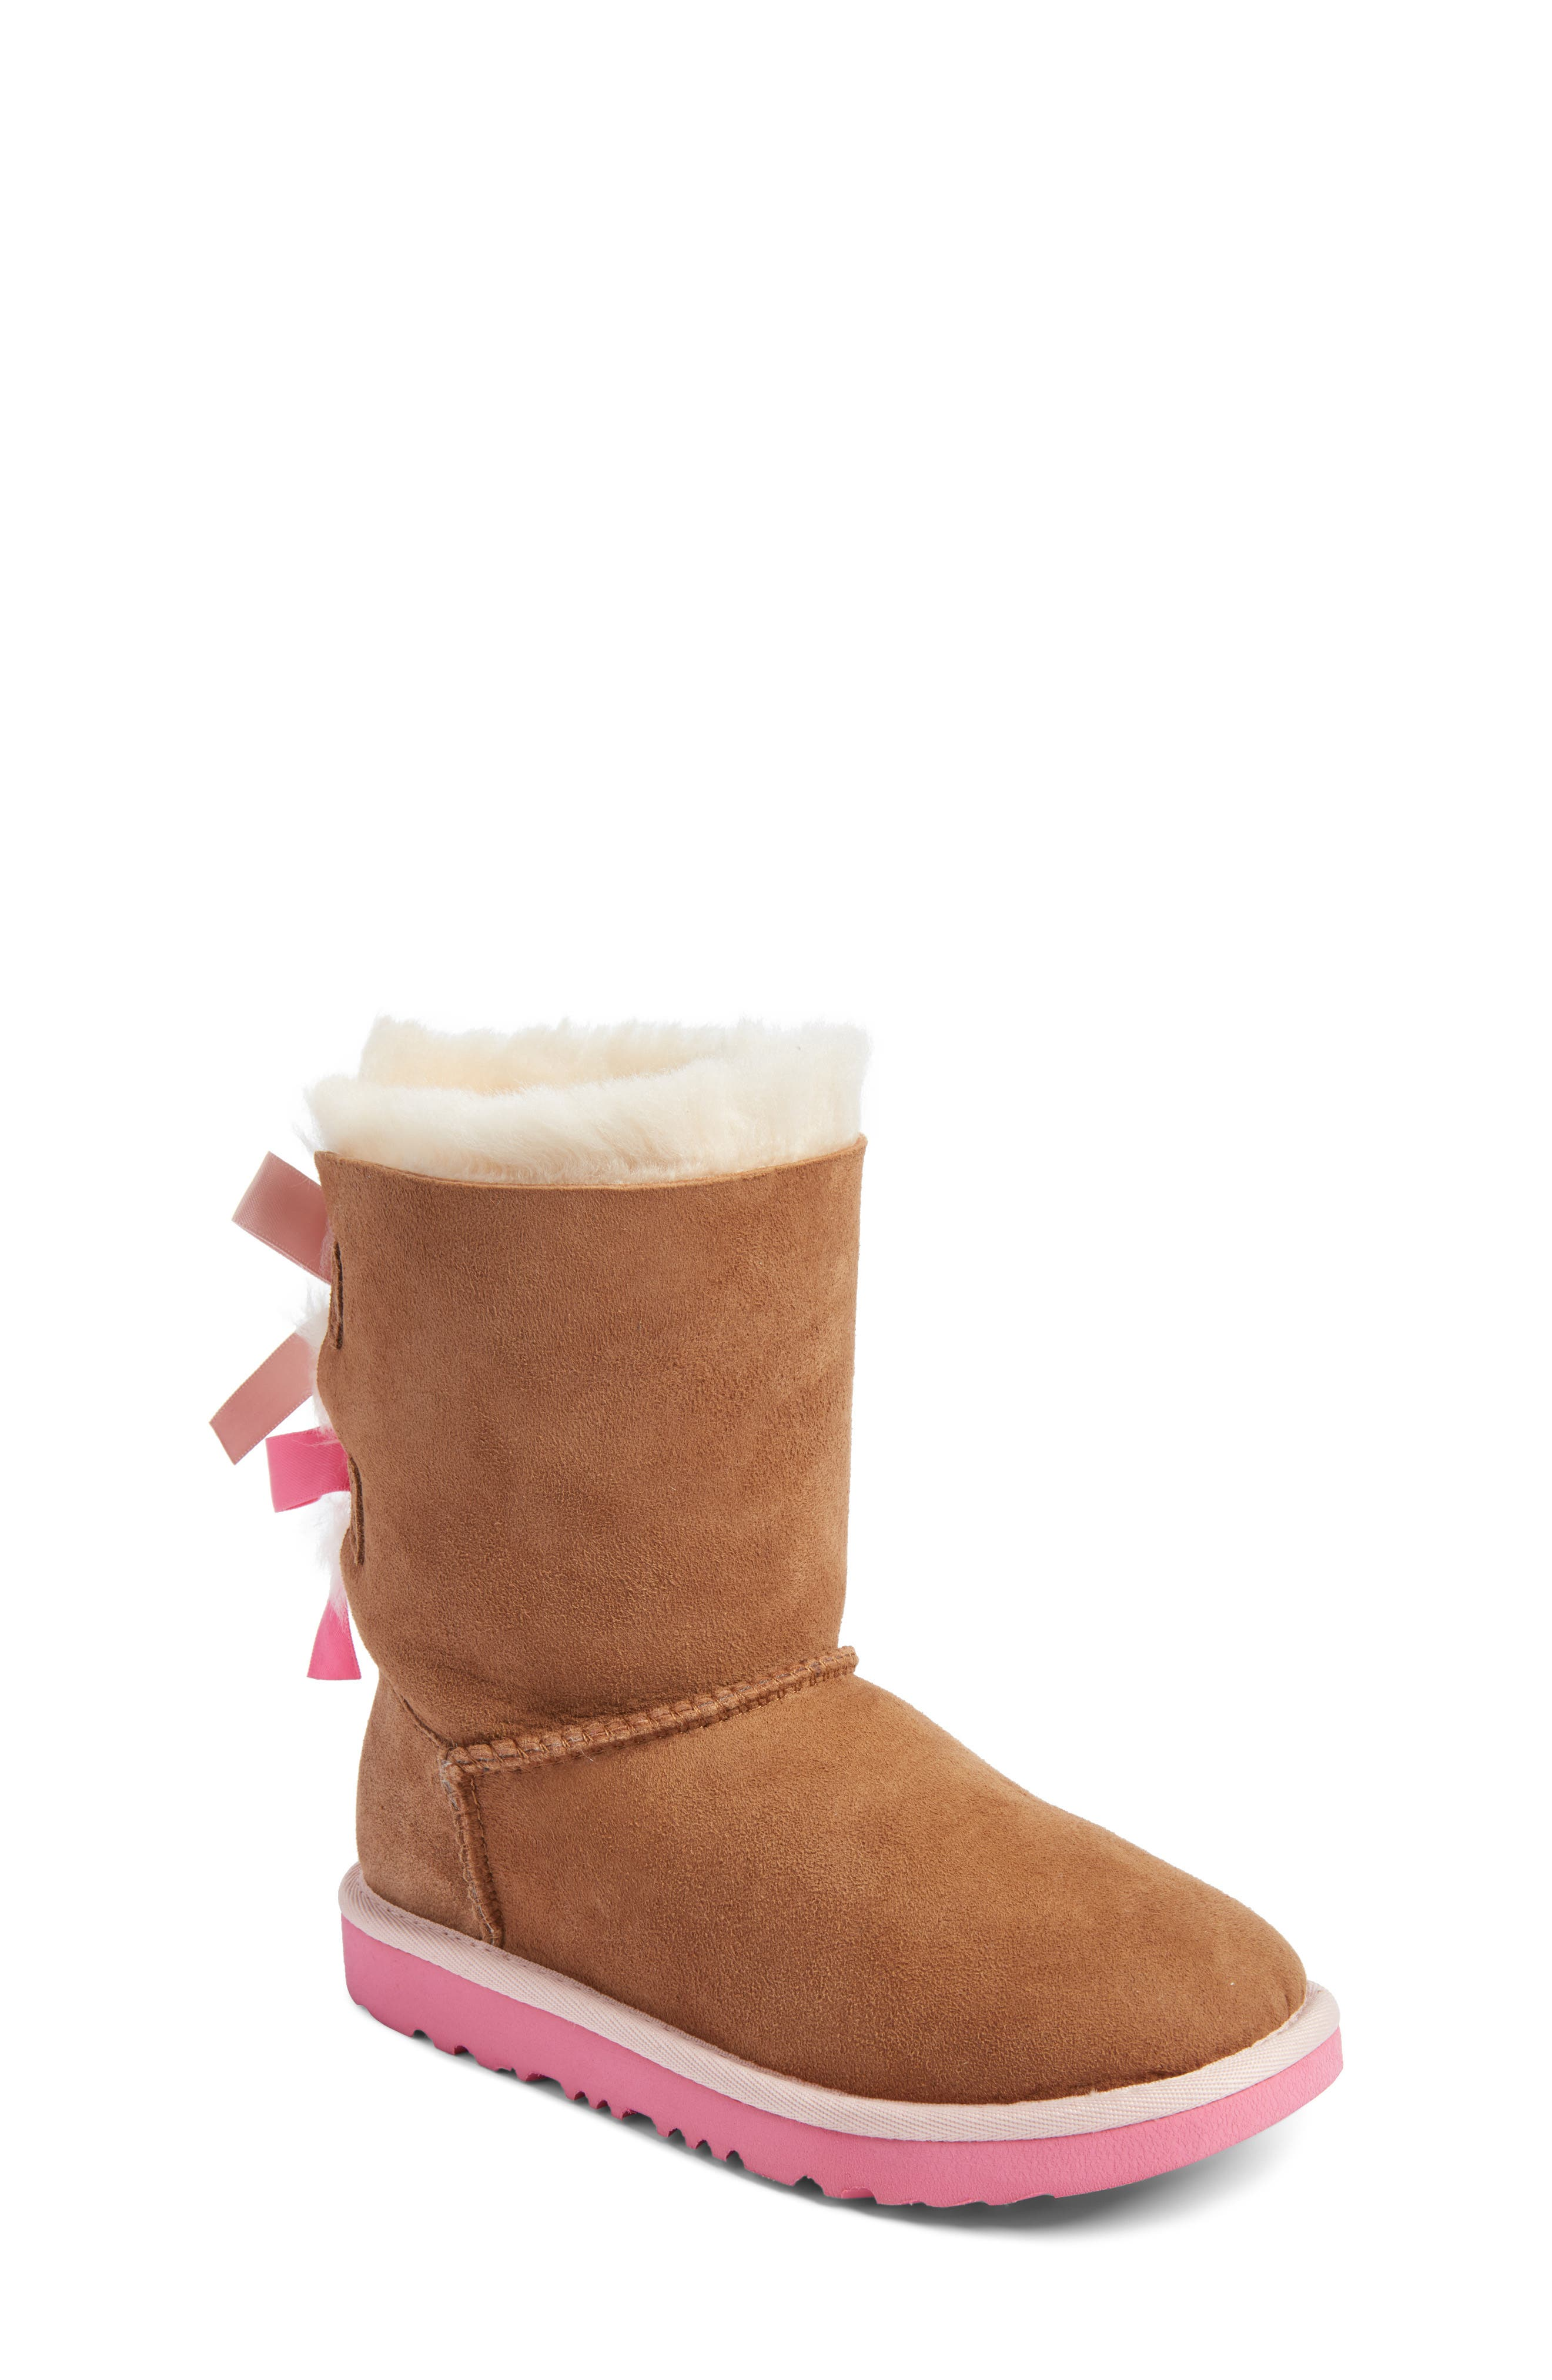 UGG® Bailey Bow II Water Resistant Genuine Shearling Boot (Walker, Toddler, Little Kid & Big Kid)